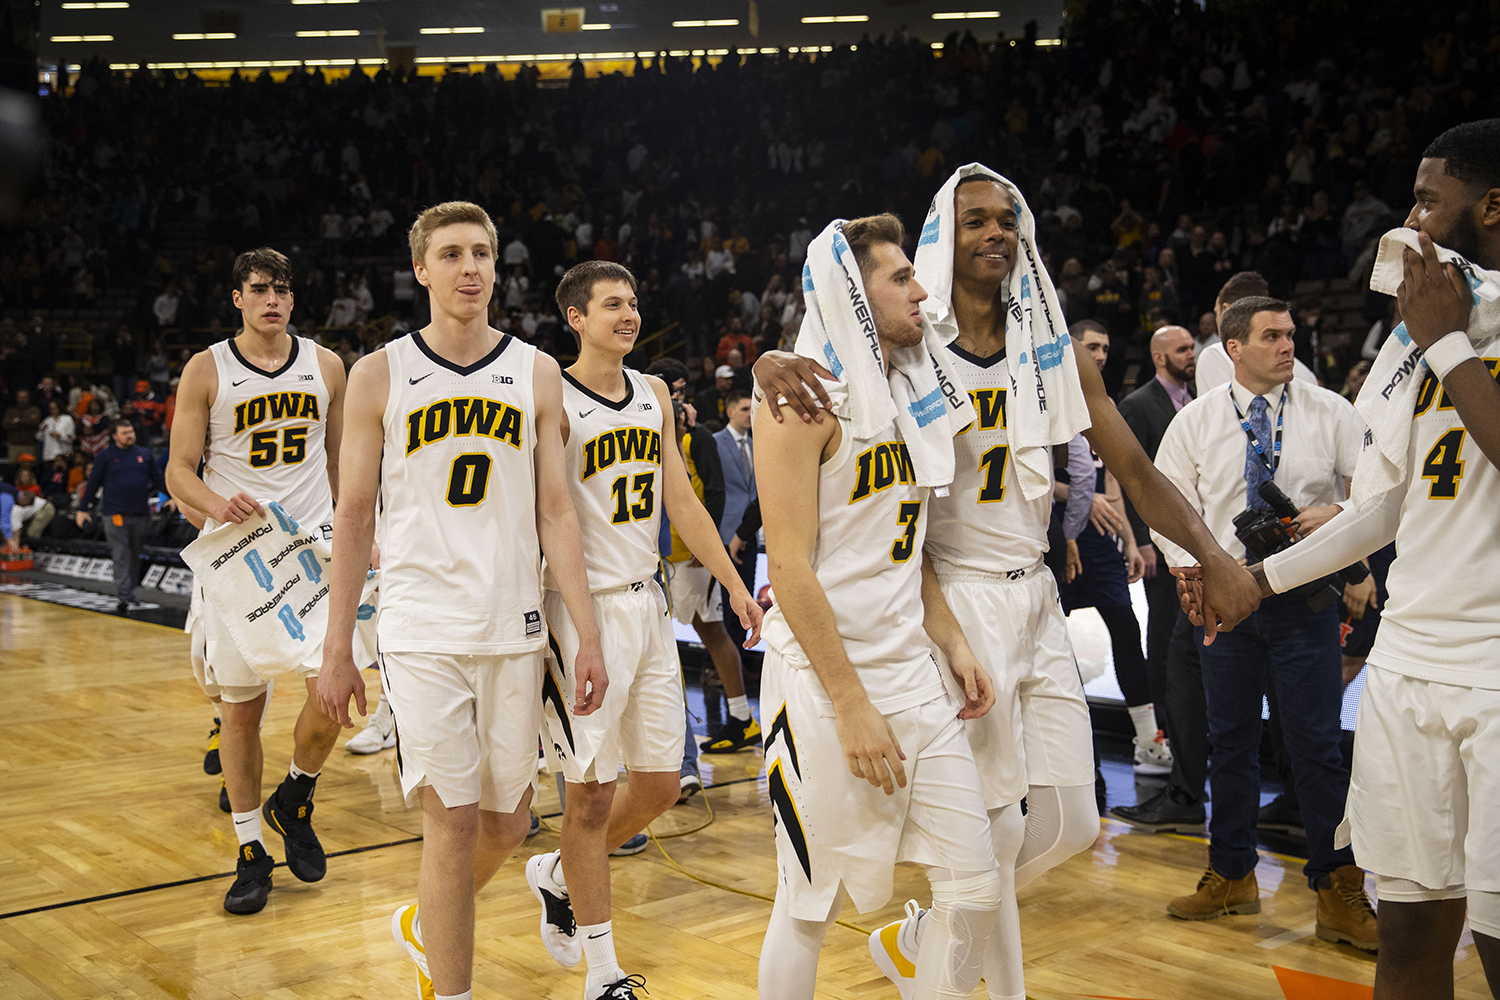 Iowa+players+celebrate+a+win+after+the+Iowa%2FIllinois+men%27s+basketball+game+at+Carver-Hawkeye+Arena+on+Sunday%2C+January+20%2C+2019.+The+Hawkeyes+defeated+the+Fighting+Illini%2C+95-71.+